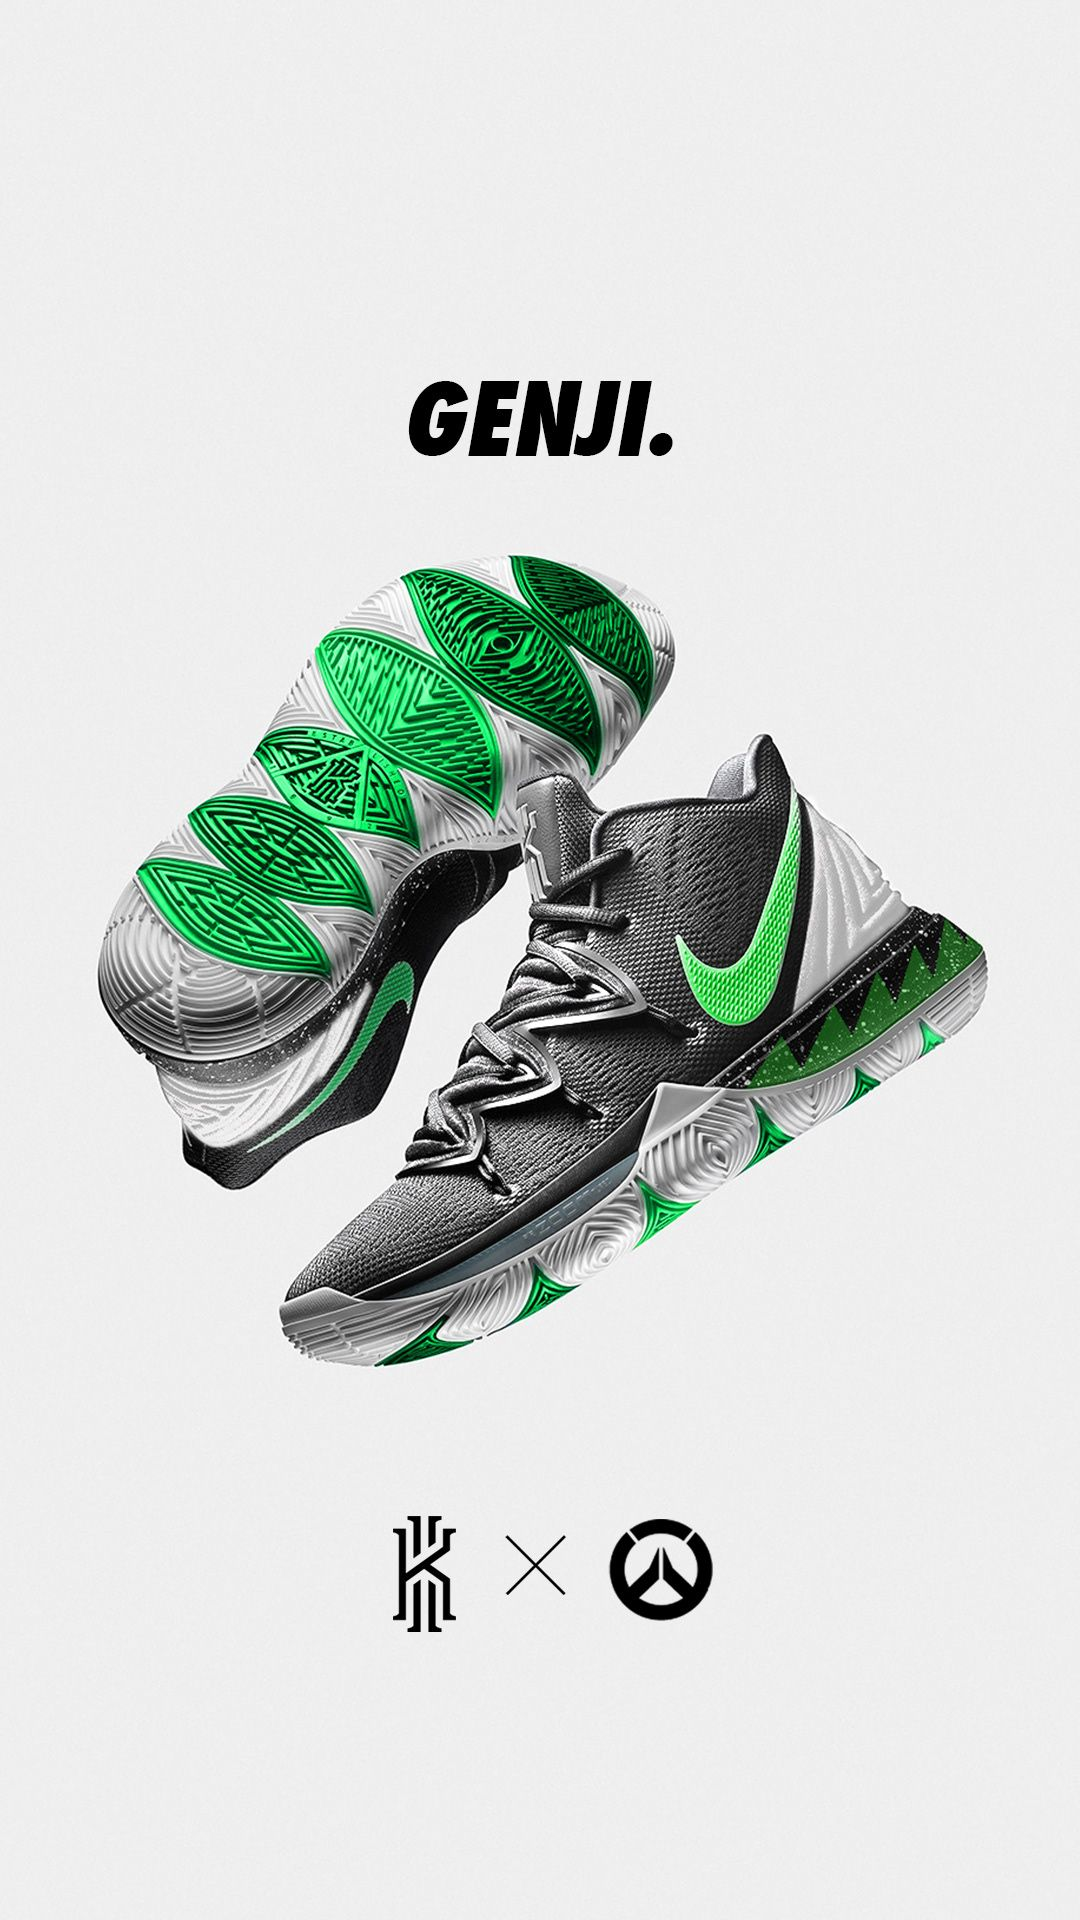 dcde2df2e85 Nike Kyrie 5 X Overwatch Concepts on Behance